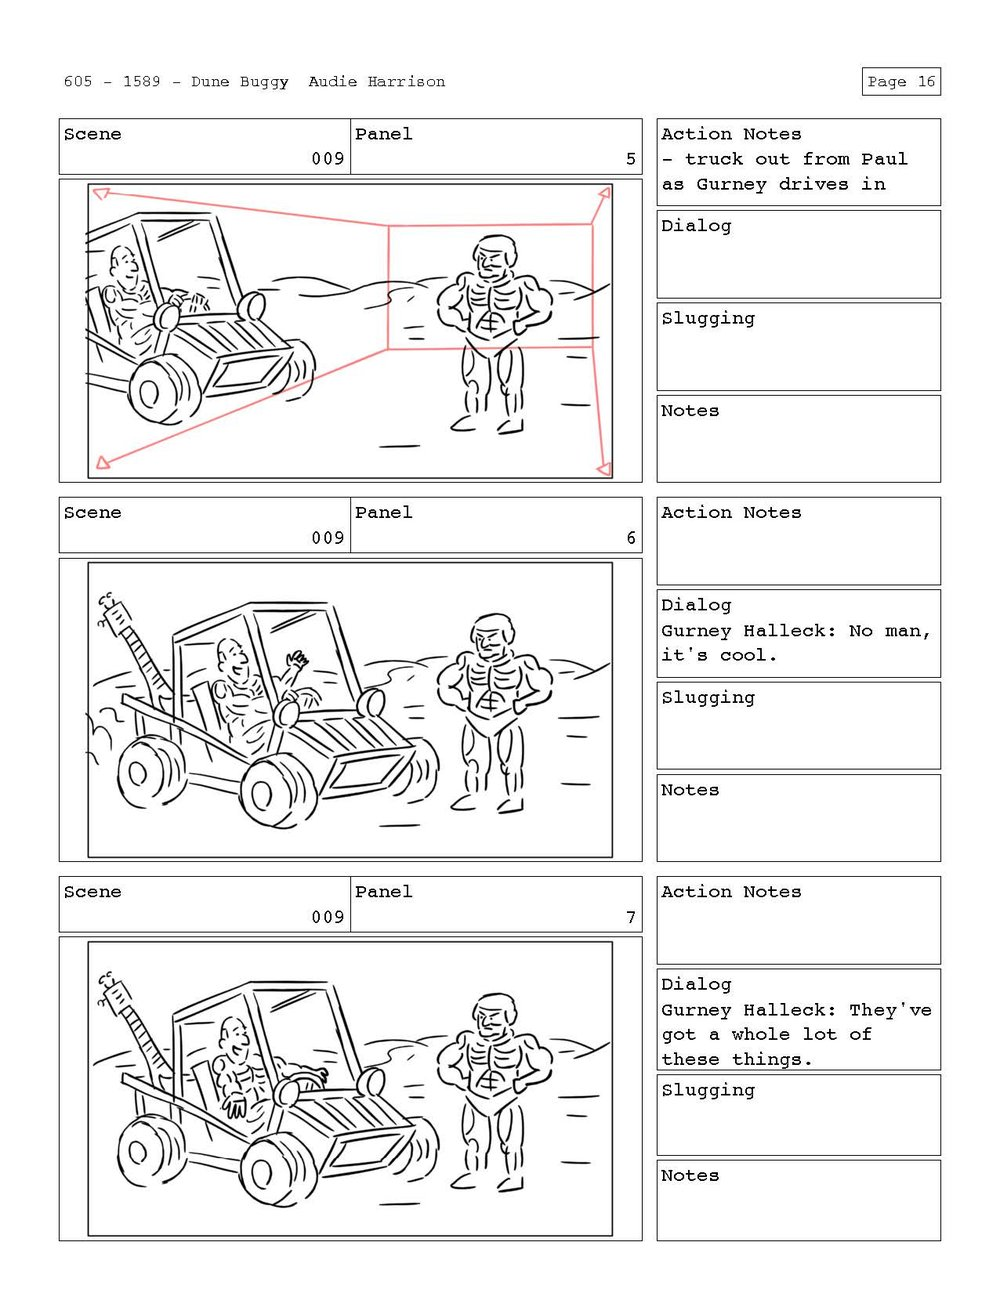 Dune_Buggy_Page_17.jpg